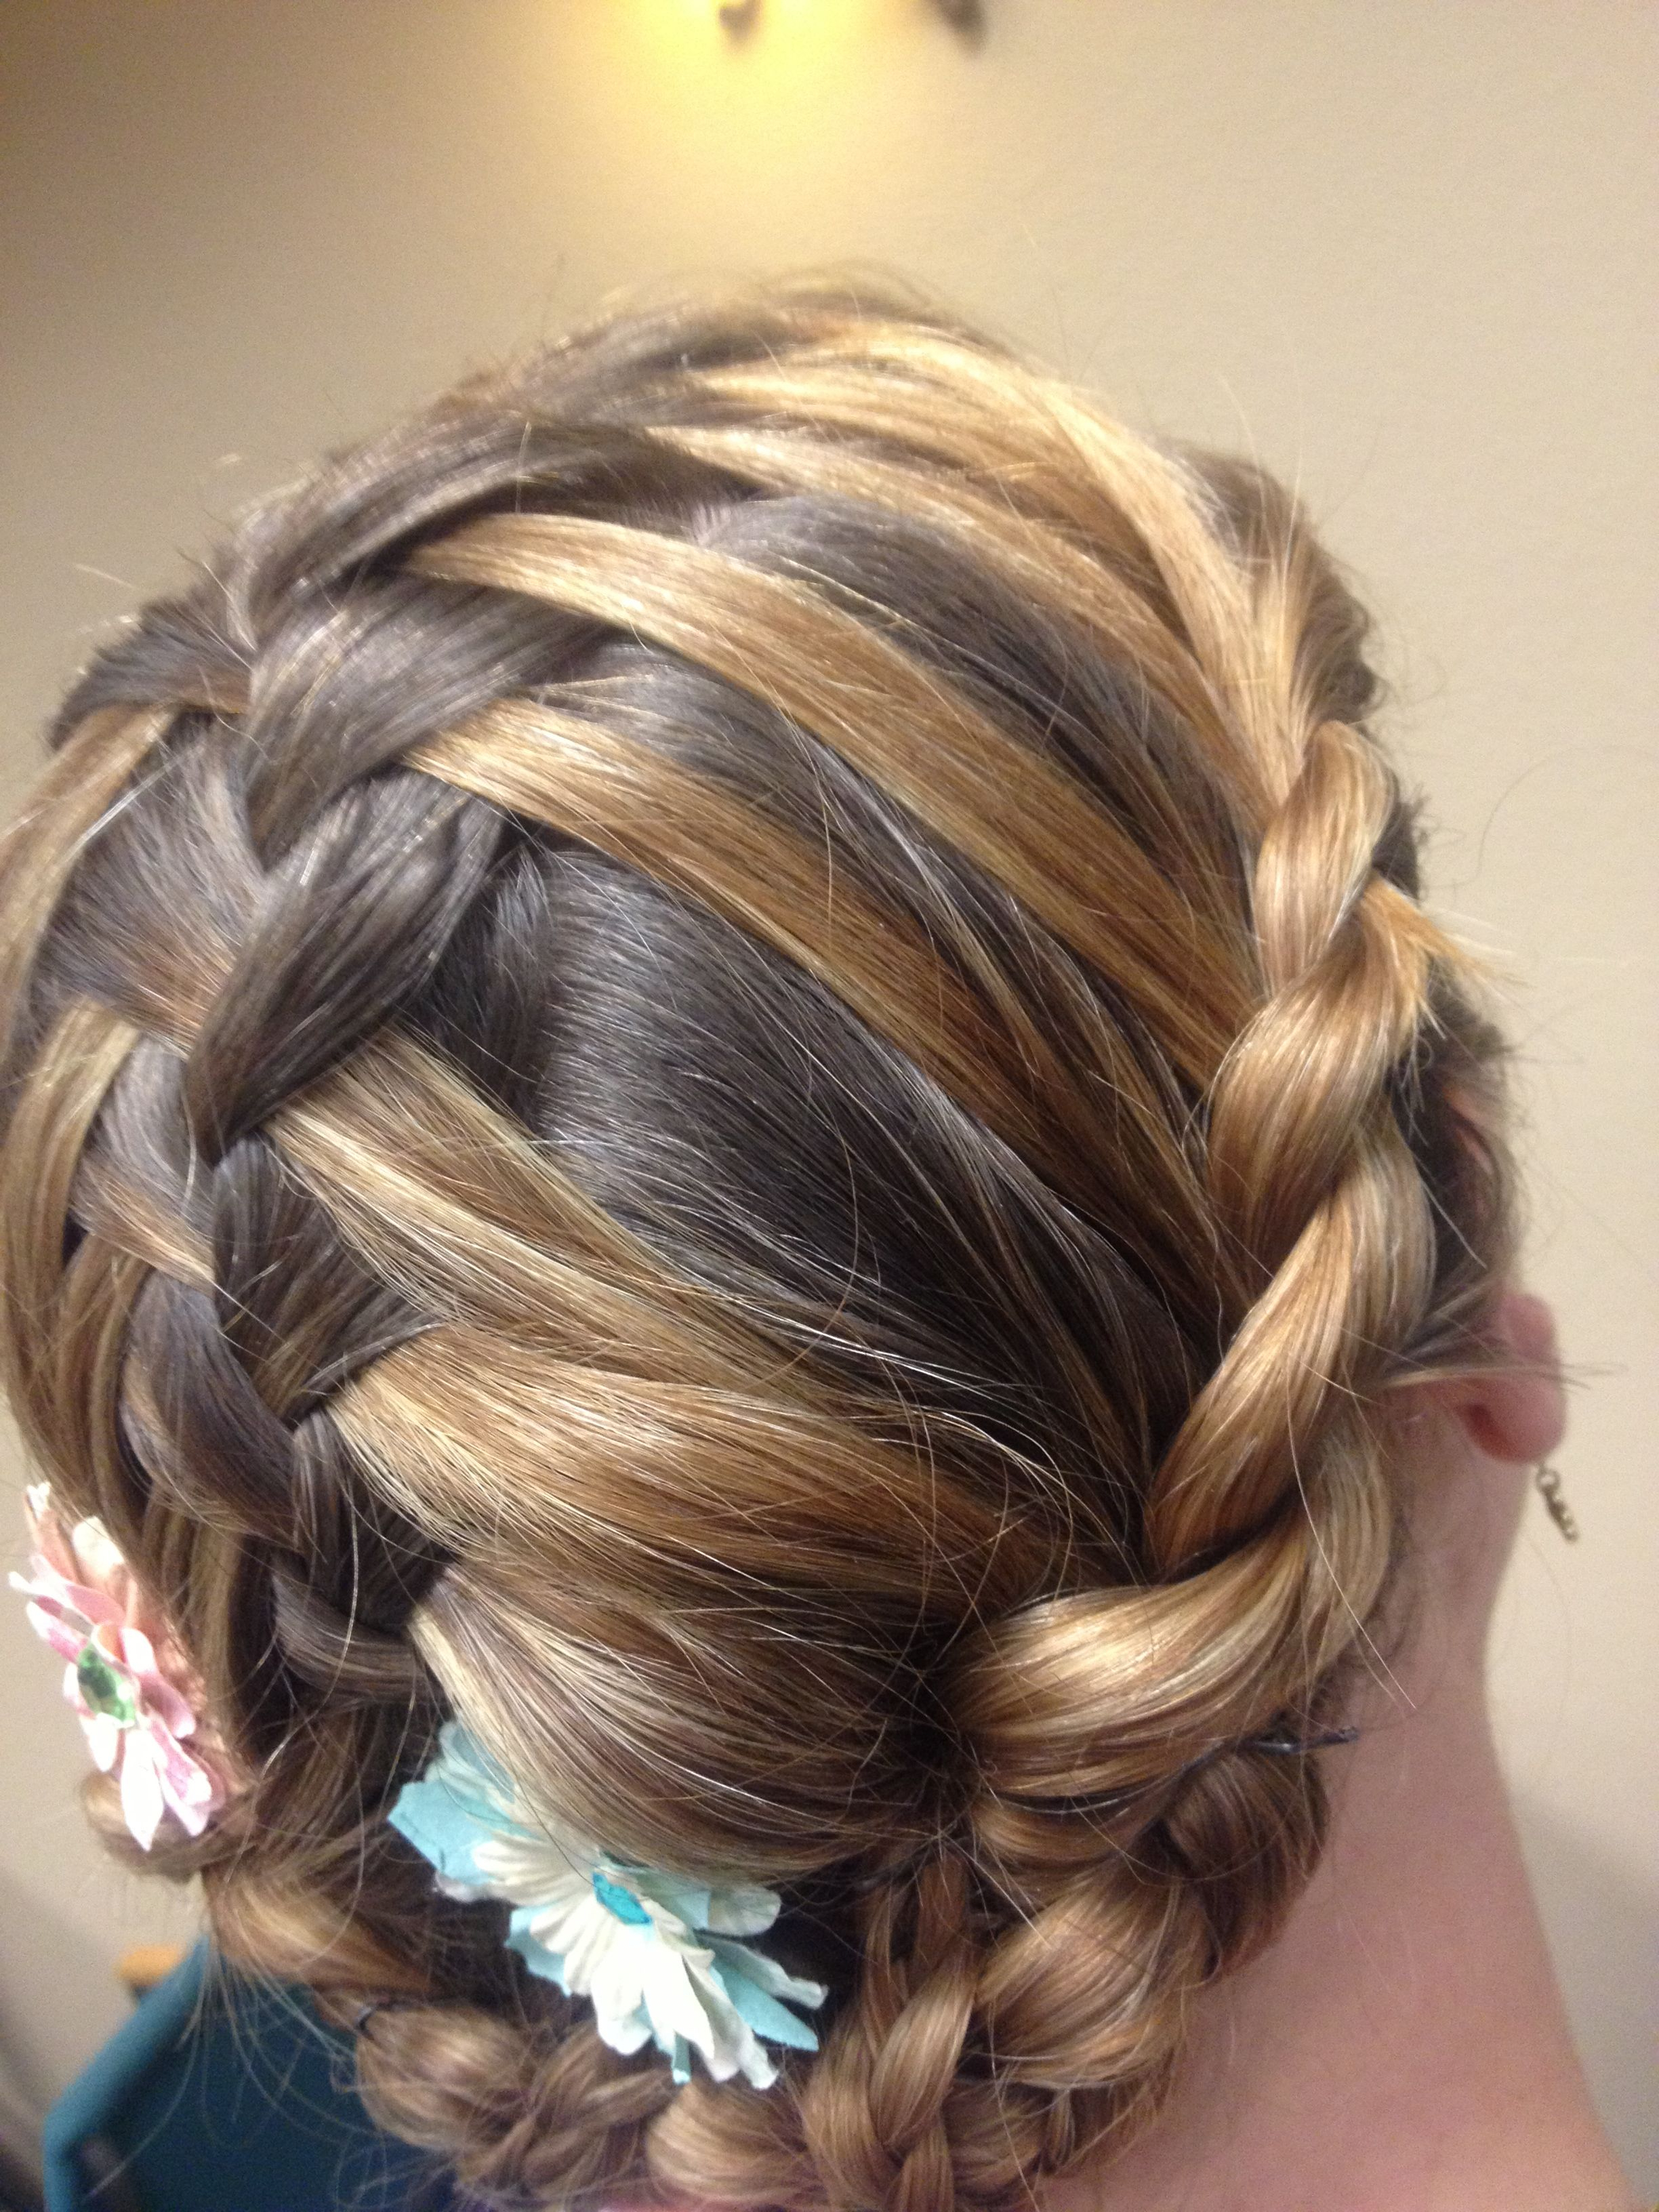 Famous Double Headband Braided Hairstyles With Flowers With Double Waterfall Braid Down The Center, Then Incorporated (View 6 of 20)